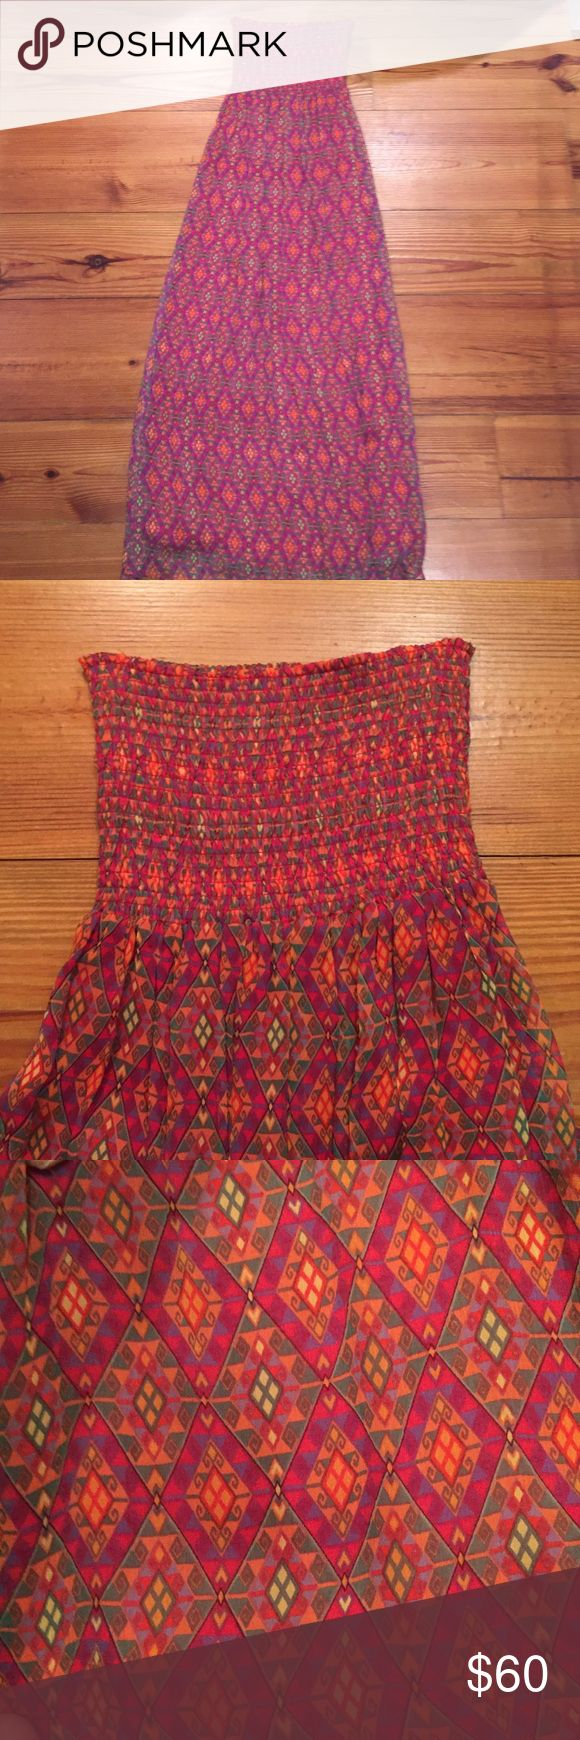 SCOOP NYC Strapless Maxi Dress Perfect for summer bbqs or as a beach cover up! Barely worn! Not splendid!! Splendid Dresses Maxi